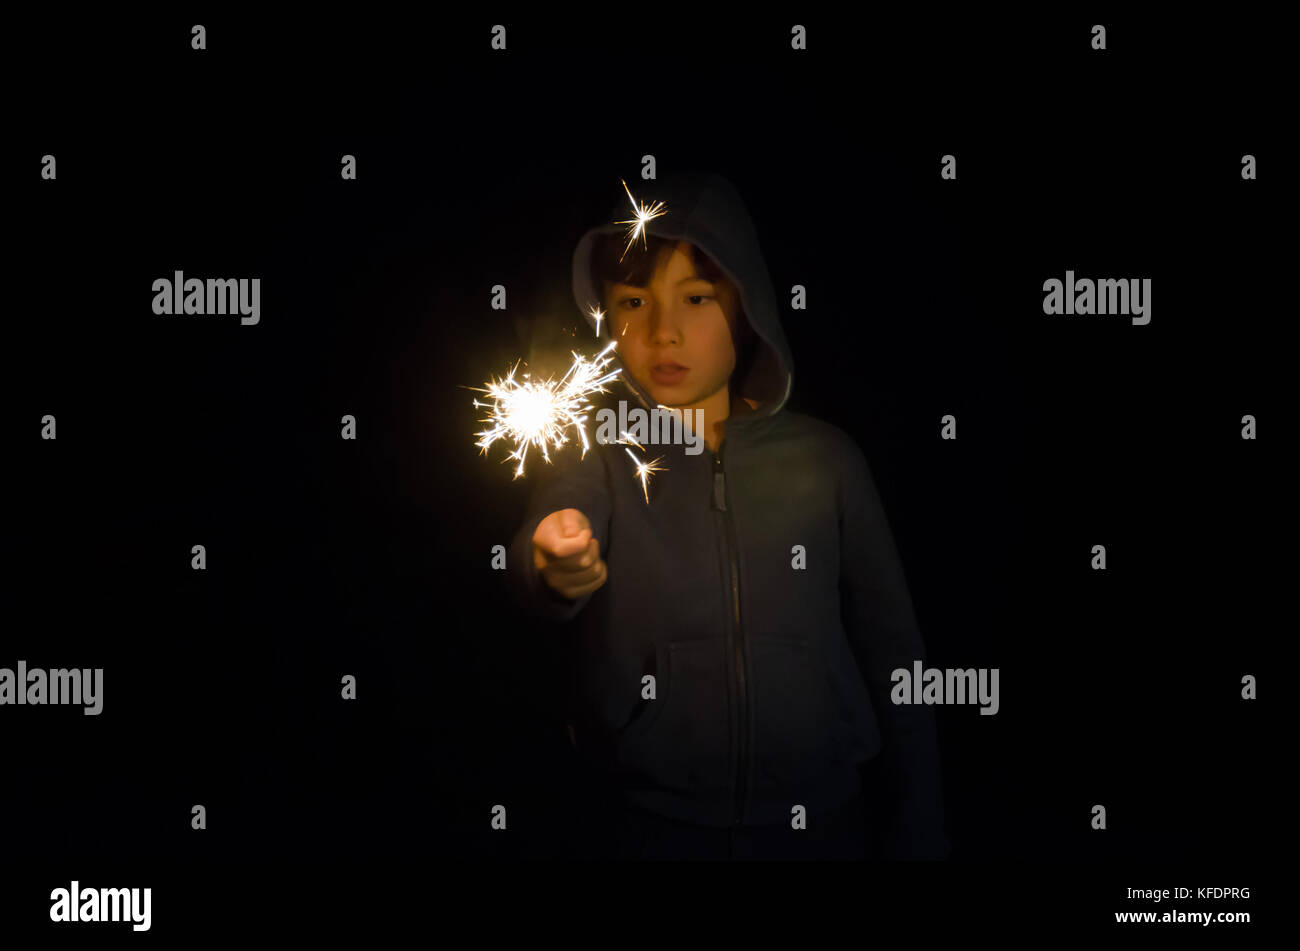 a-young-boy-playing-with-a-sparkler-in-the-back-garden-KFDPRG.jpg